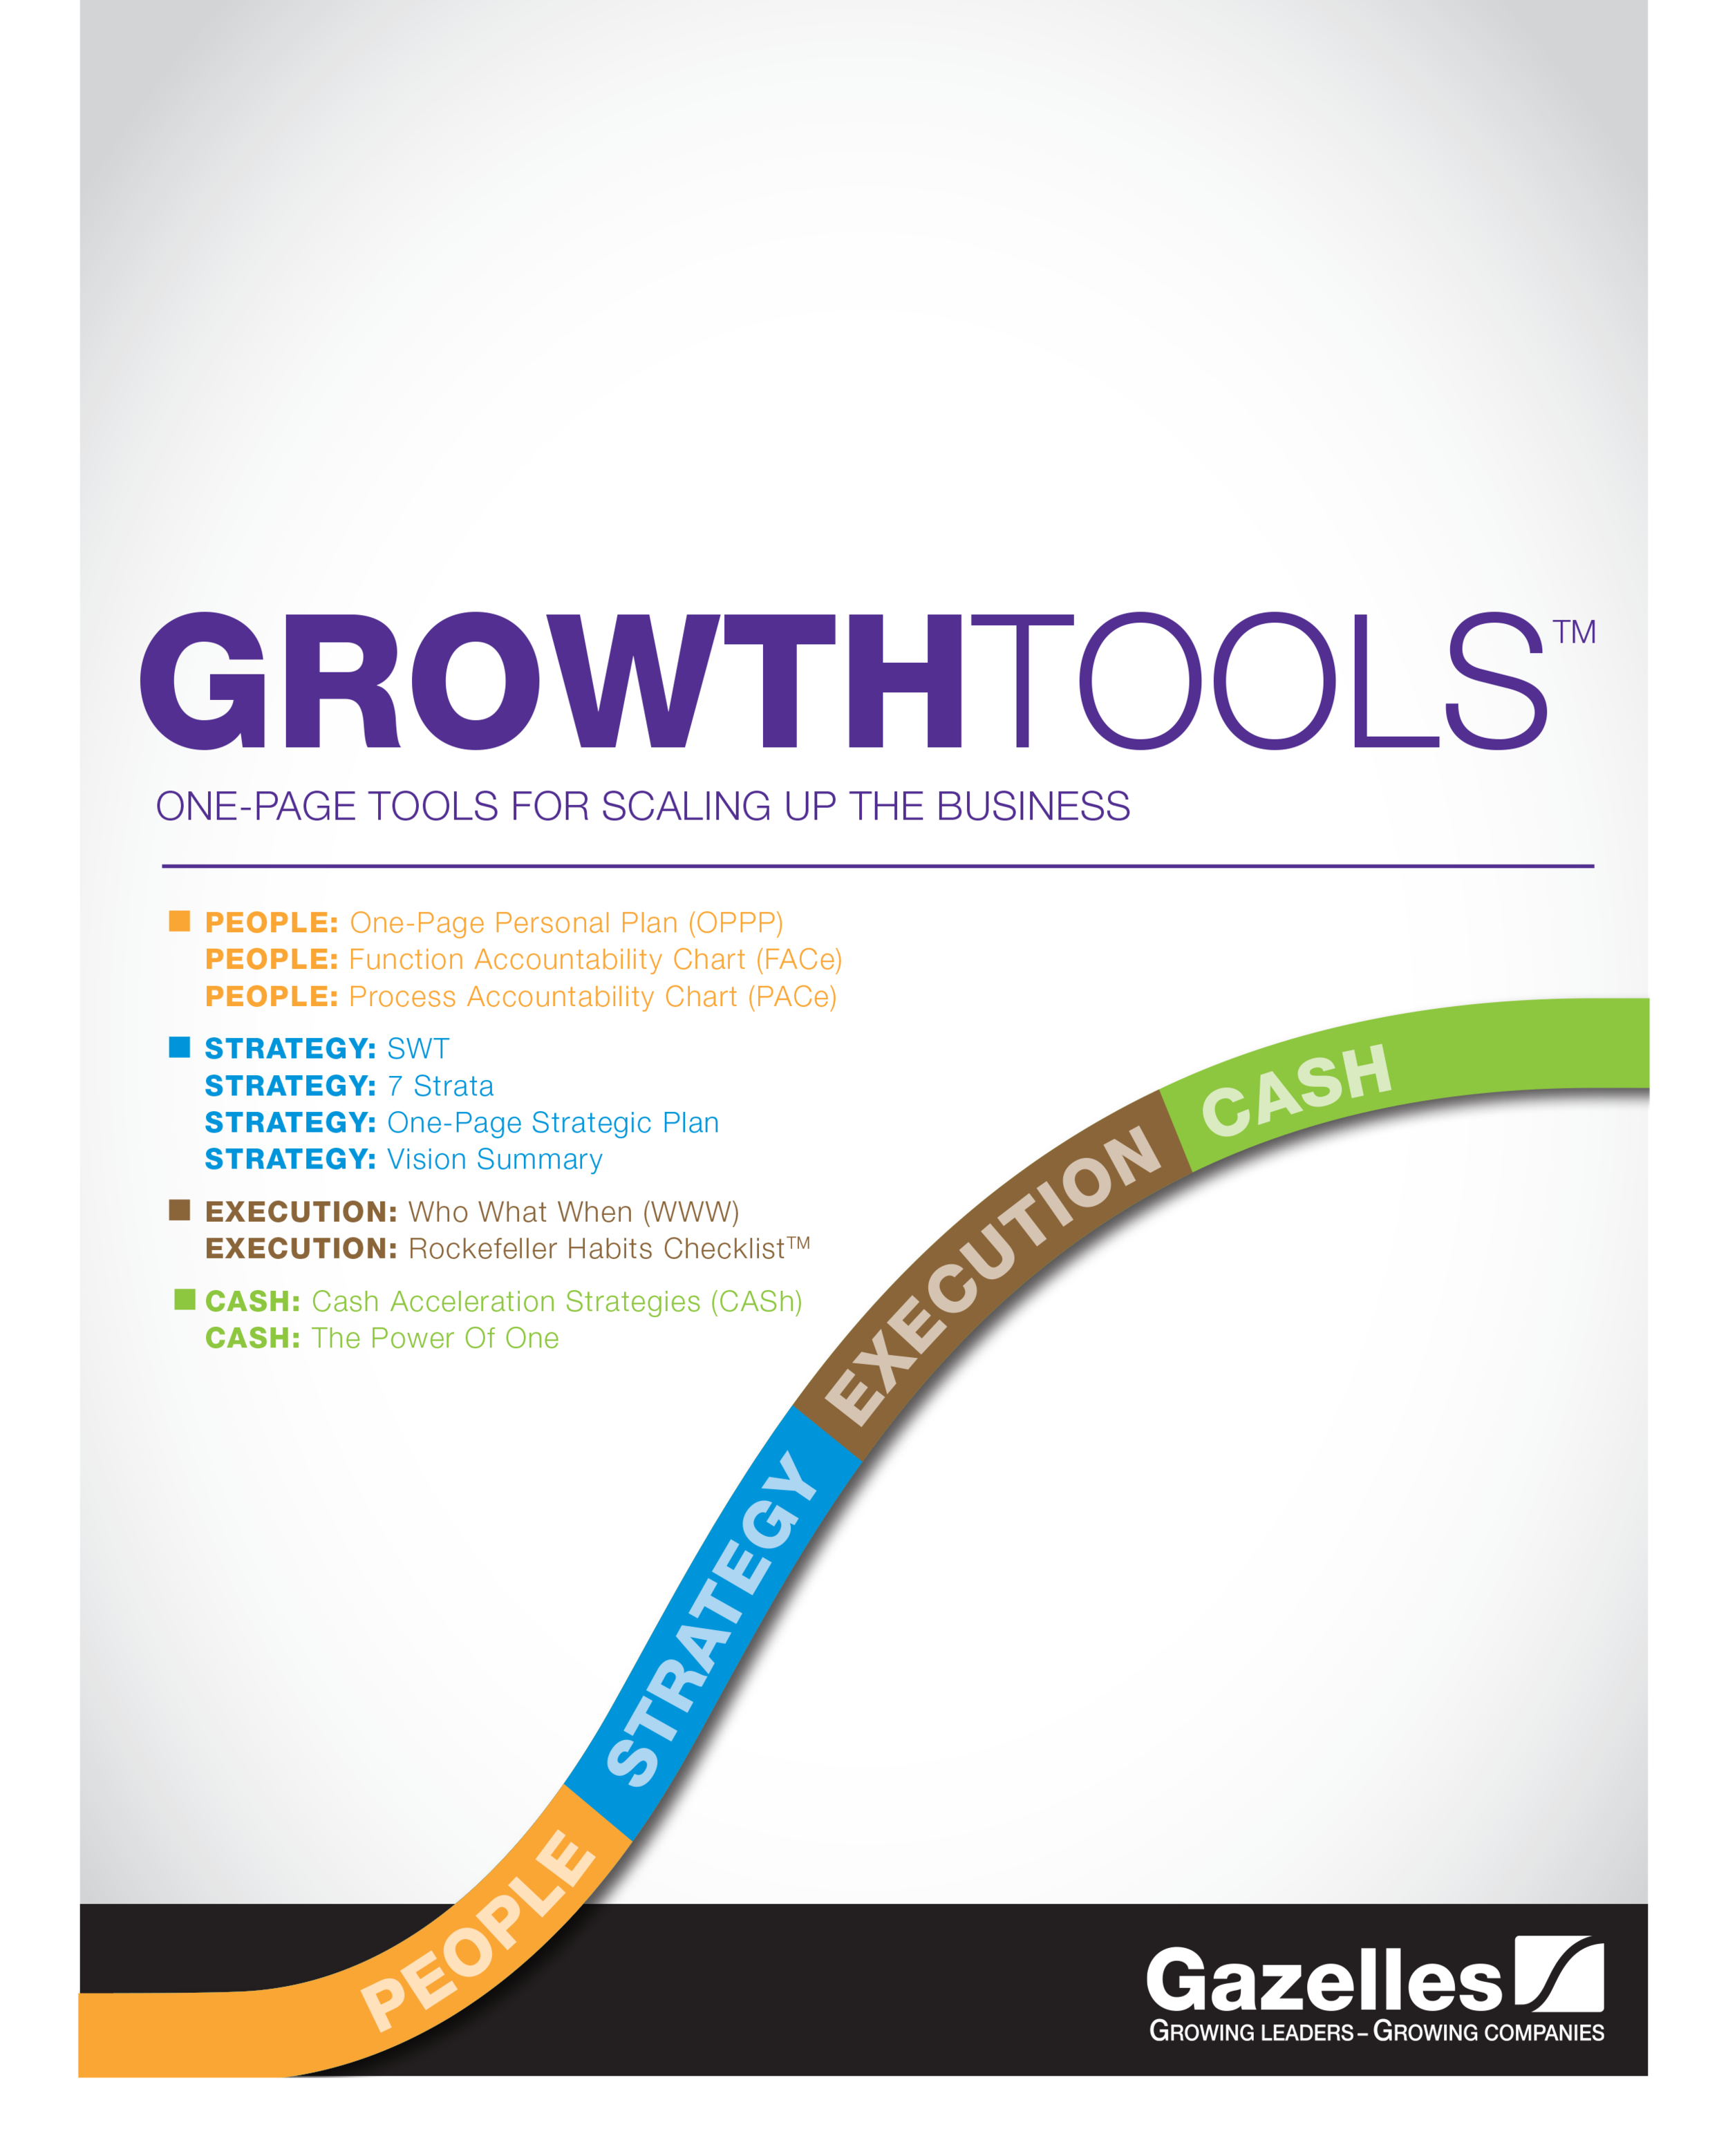 growth-tools-all-1.png